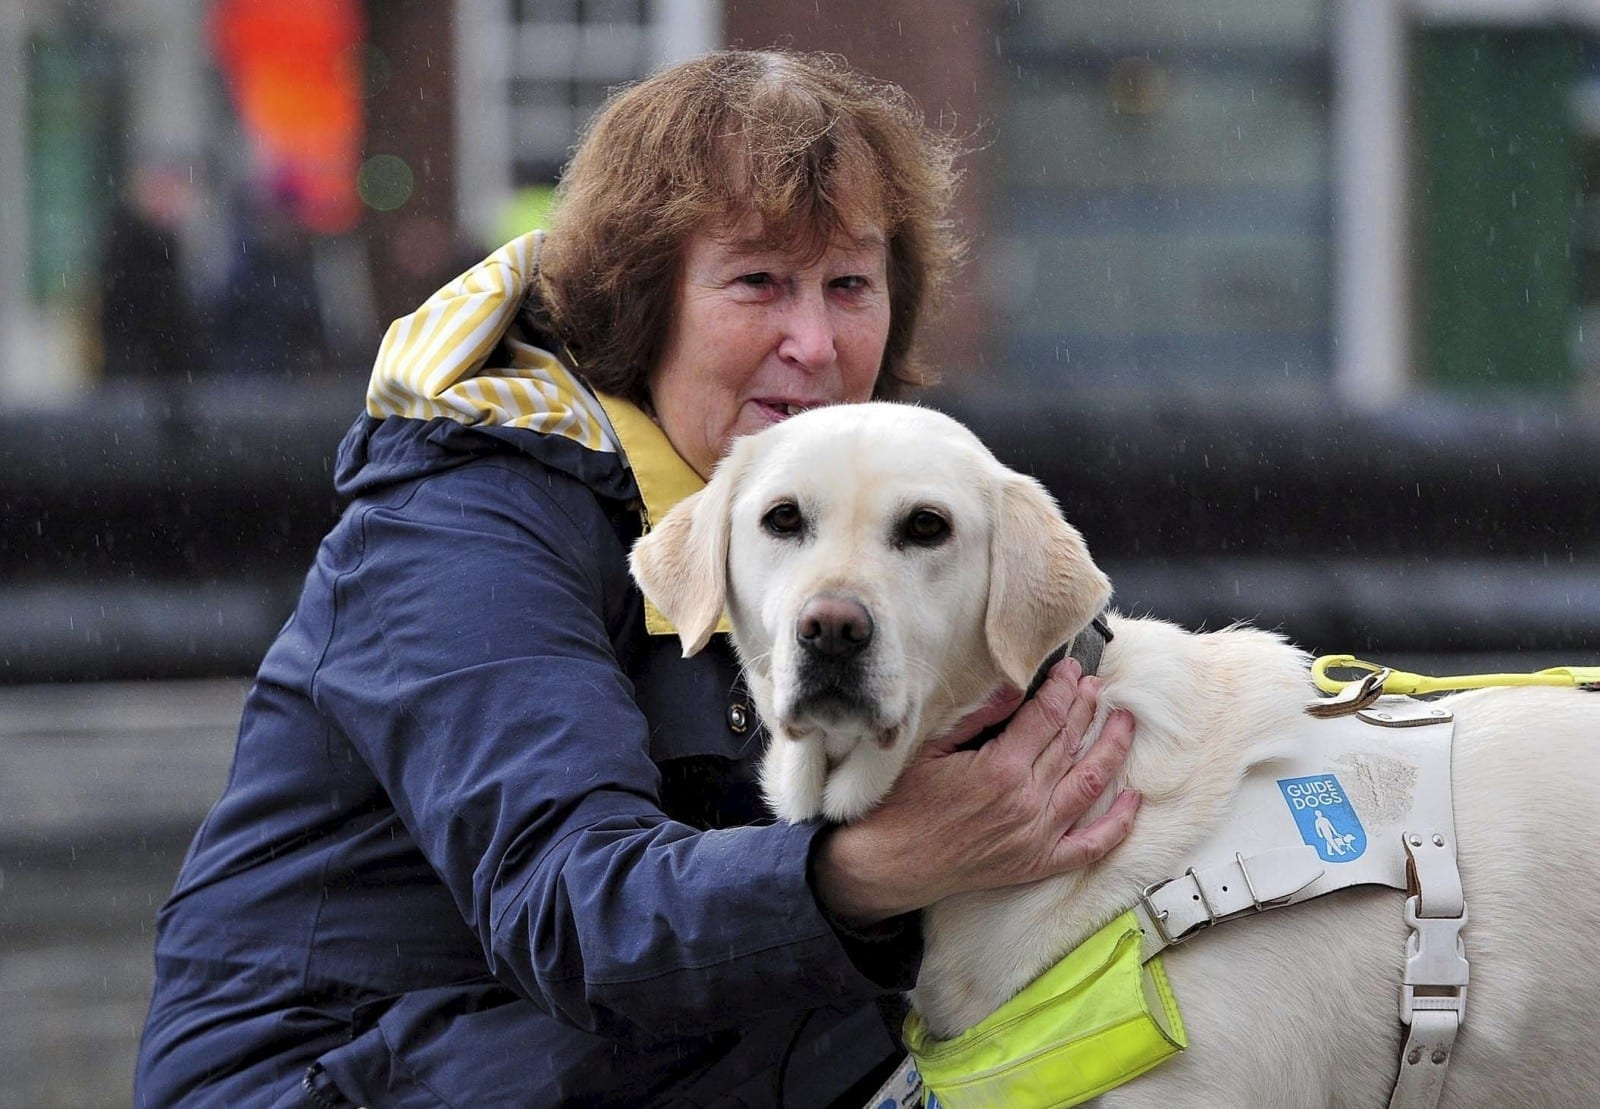 'Having A Sight Issue Is Difficult Enough Without This Added Stress' - Council Investigate Cabbie For Leaving Partially Sighted Pensioner Stranded After Refusing To Take Her Guide Dog